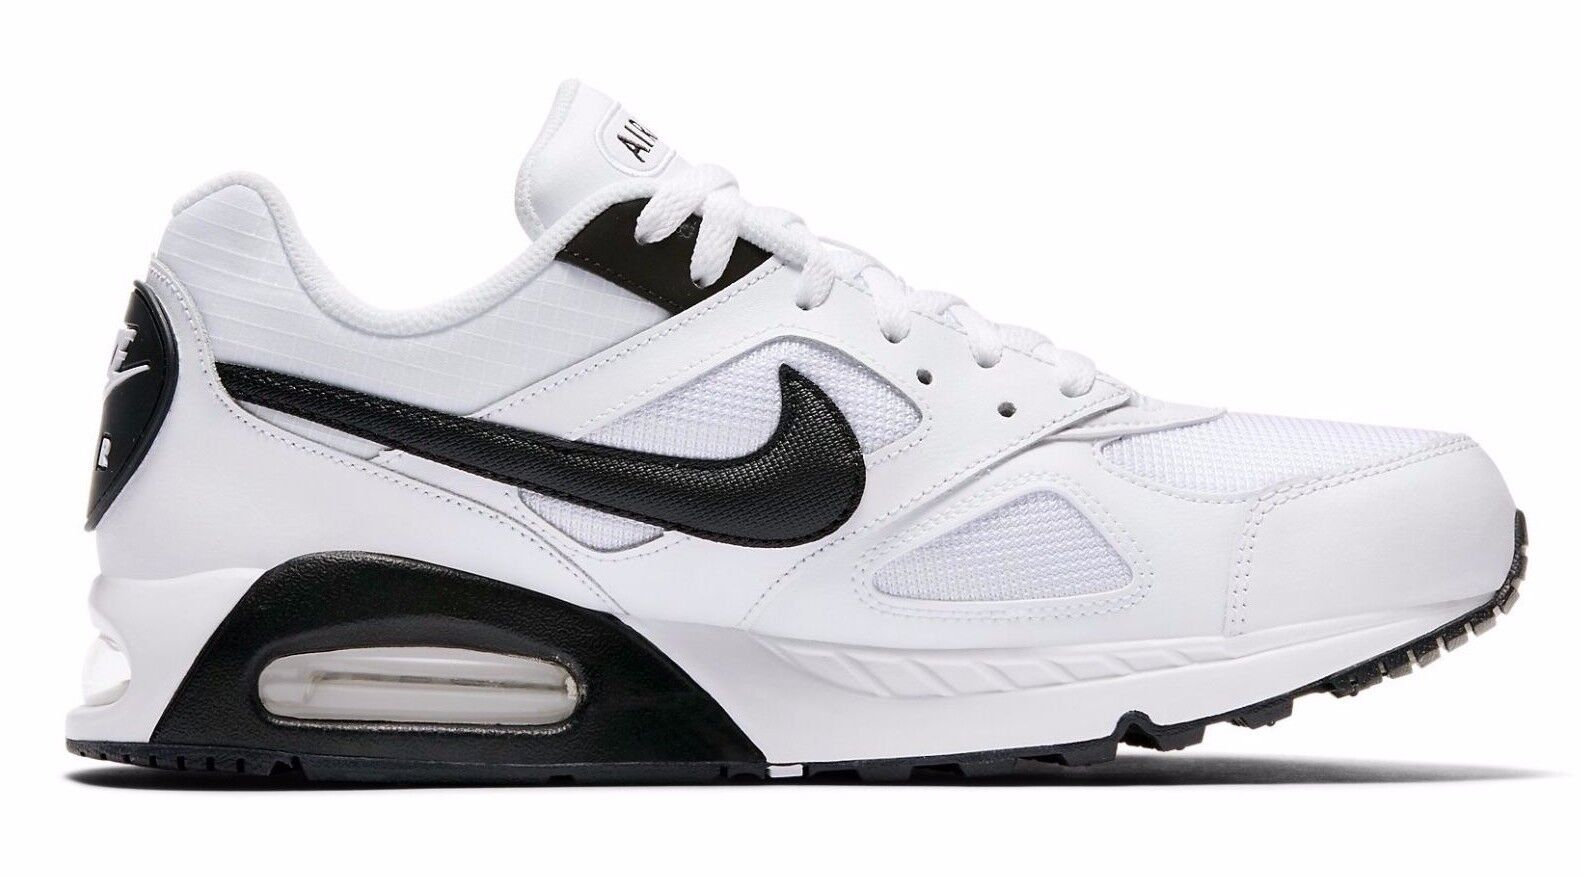 Nike Air Max Ivo Mens Trainers All Sizes New With Box RRP £100.00